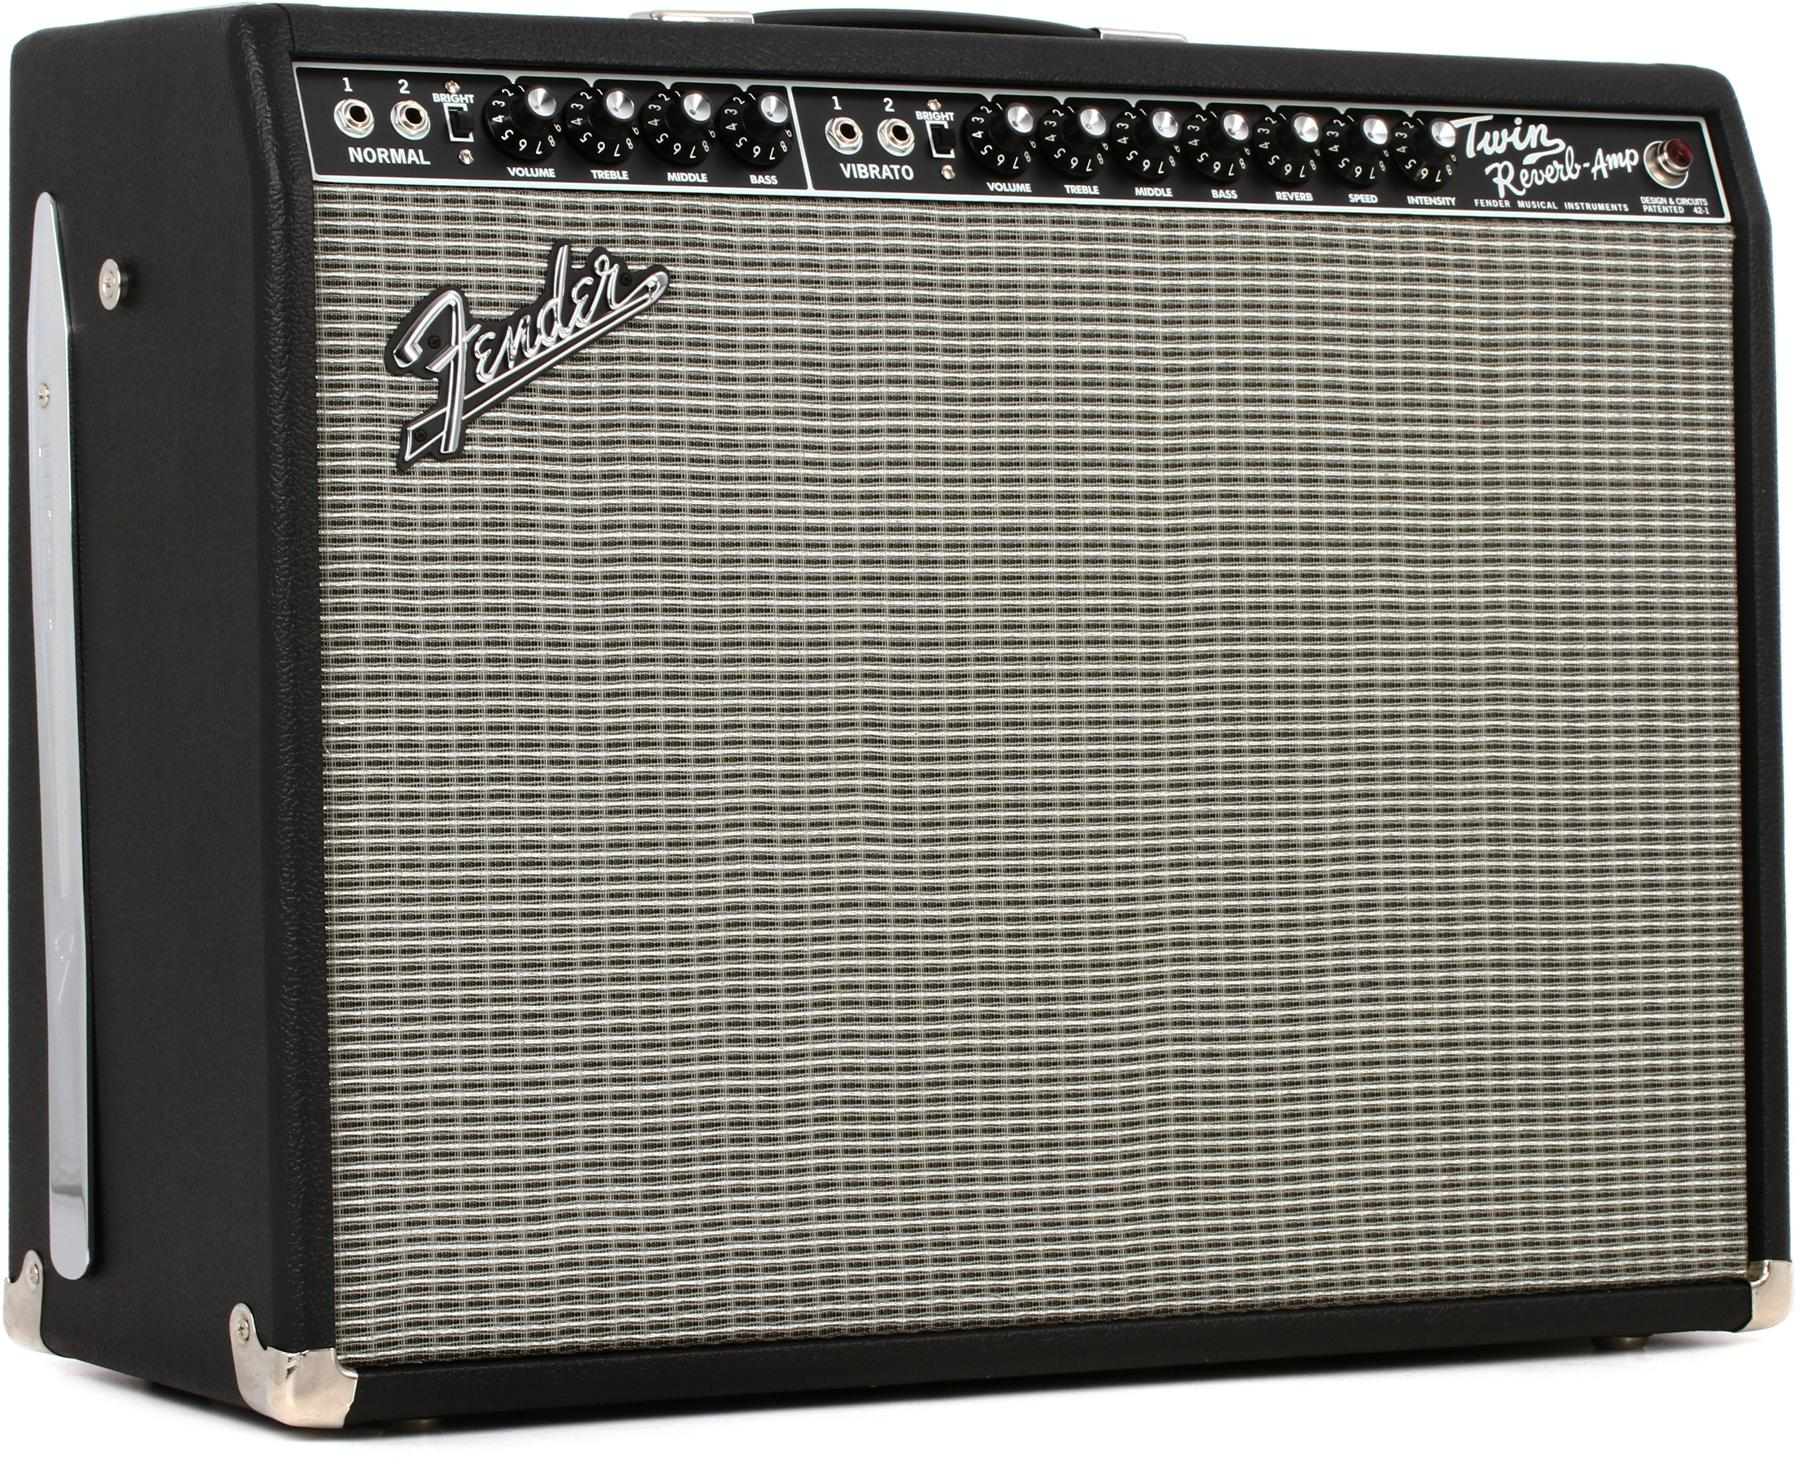 "Fender '65 Twin Reverb 2x12"" 85-watt Tube Combo Amp"